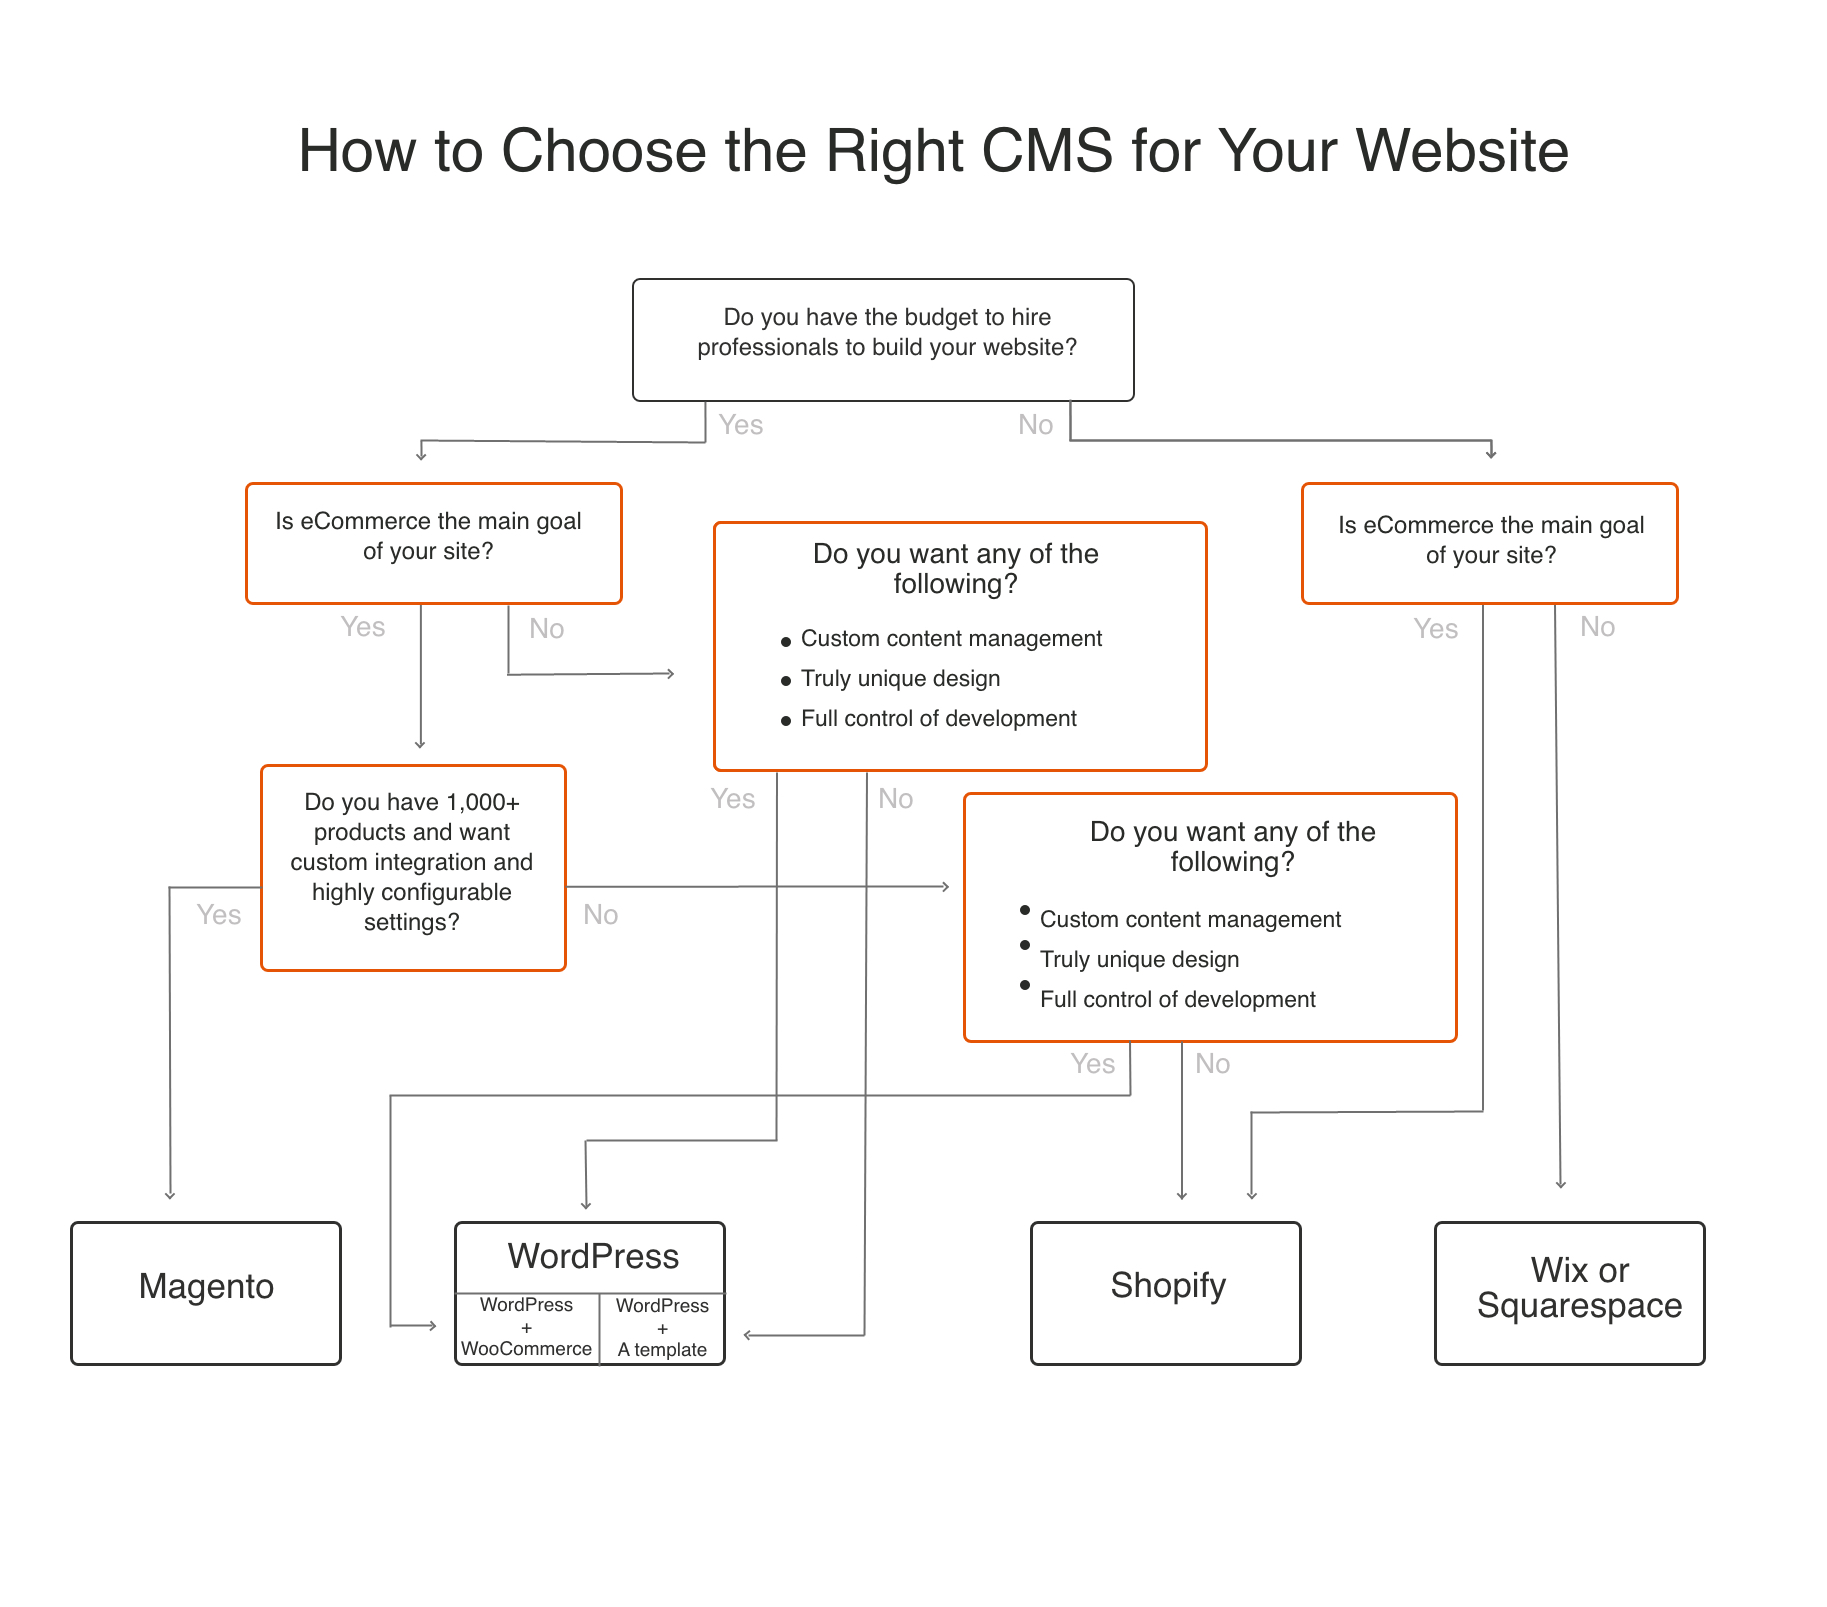 how to choose the right CMS flowchart